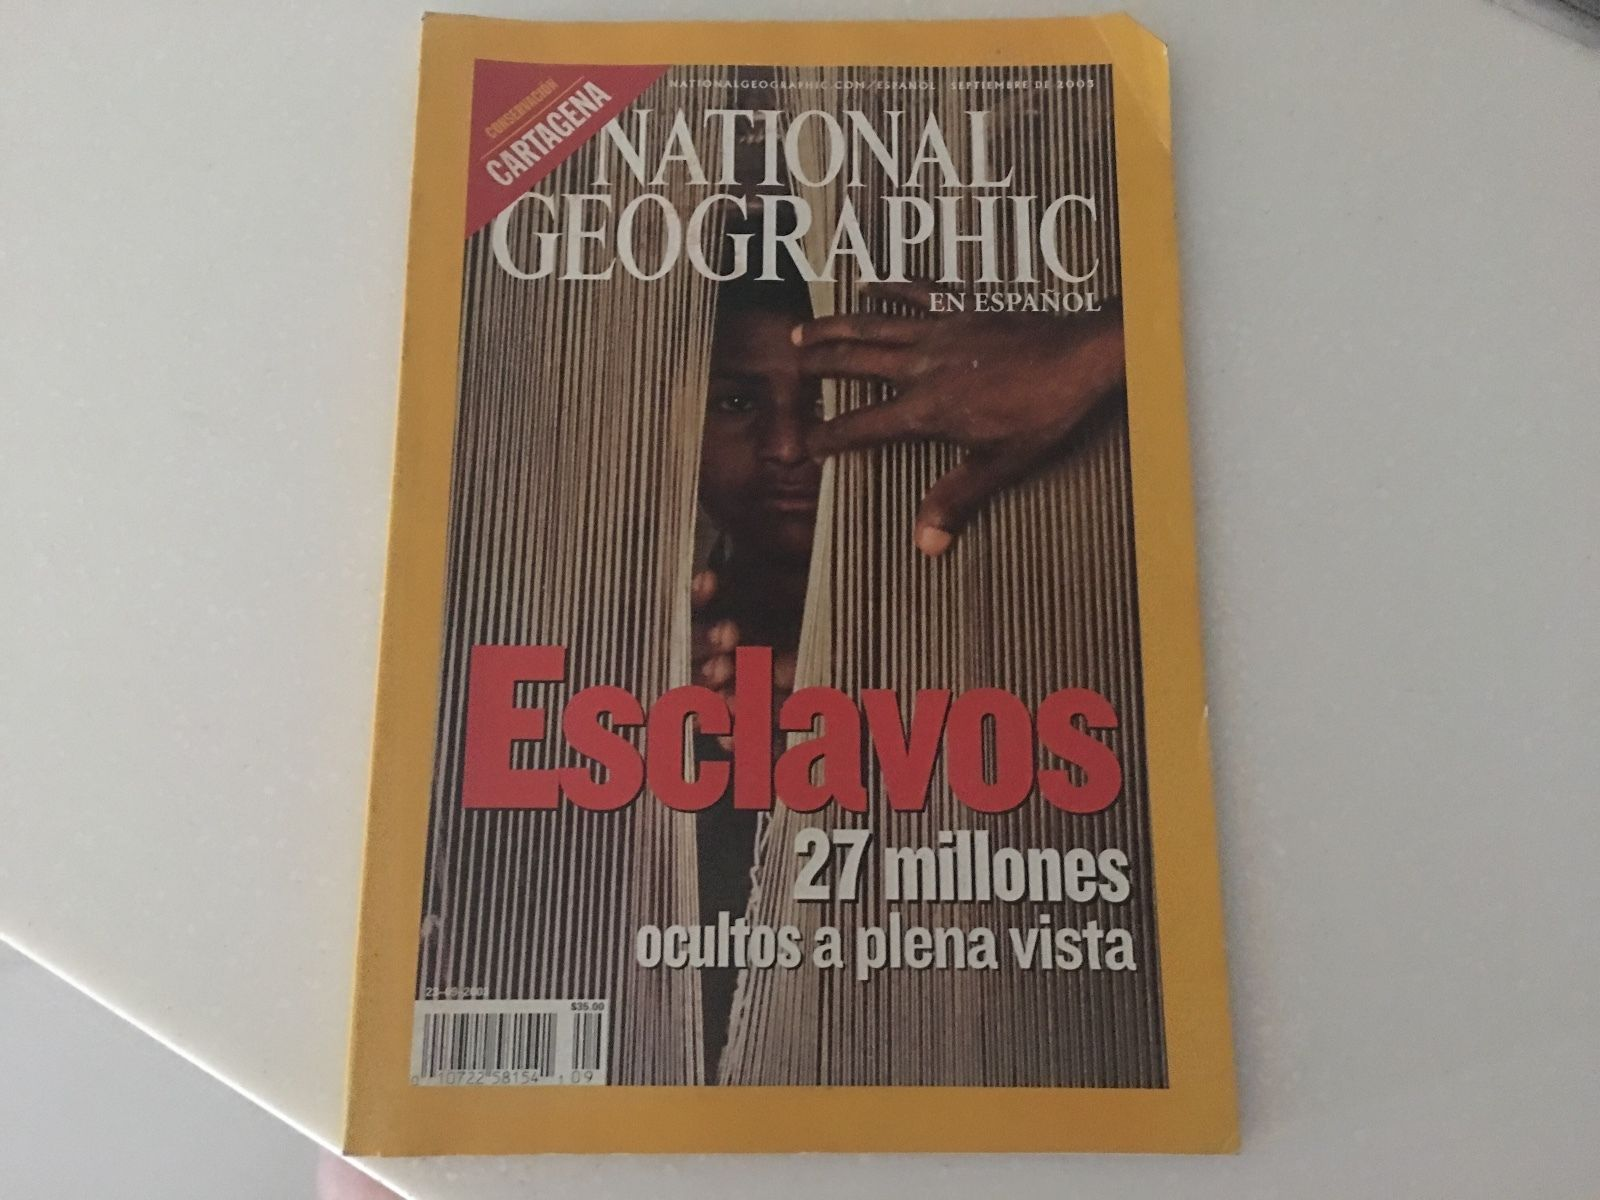 National Geographic Magazine en Español (in Spanish) September 2003